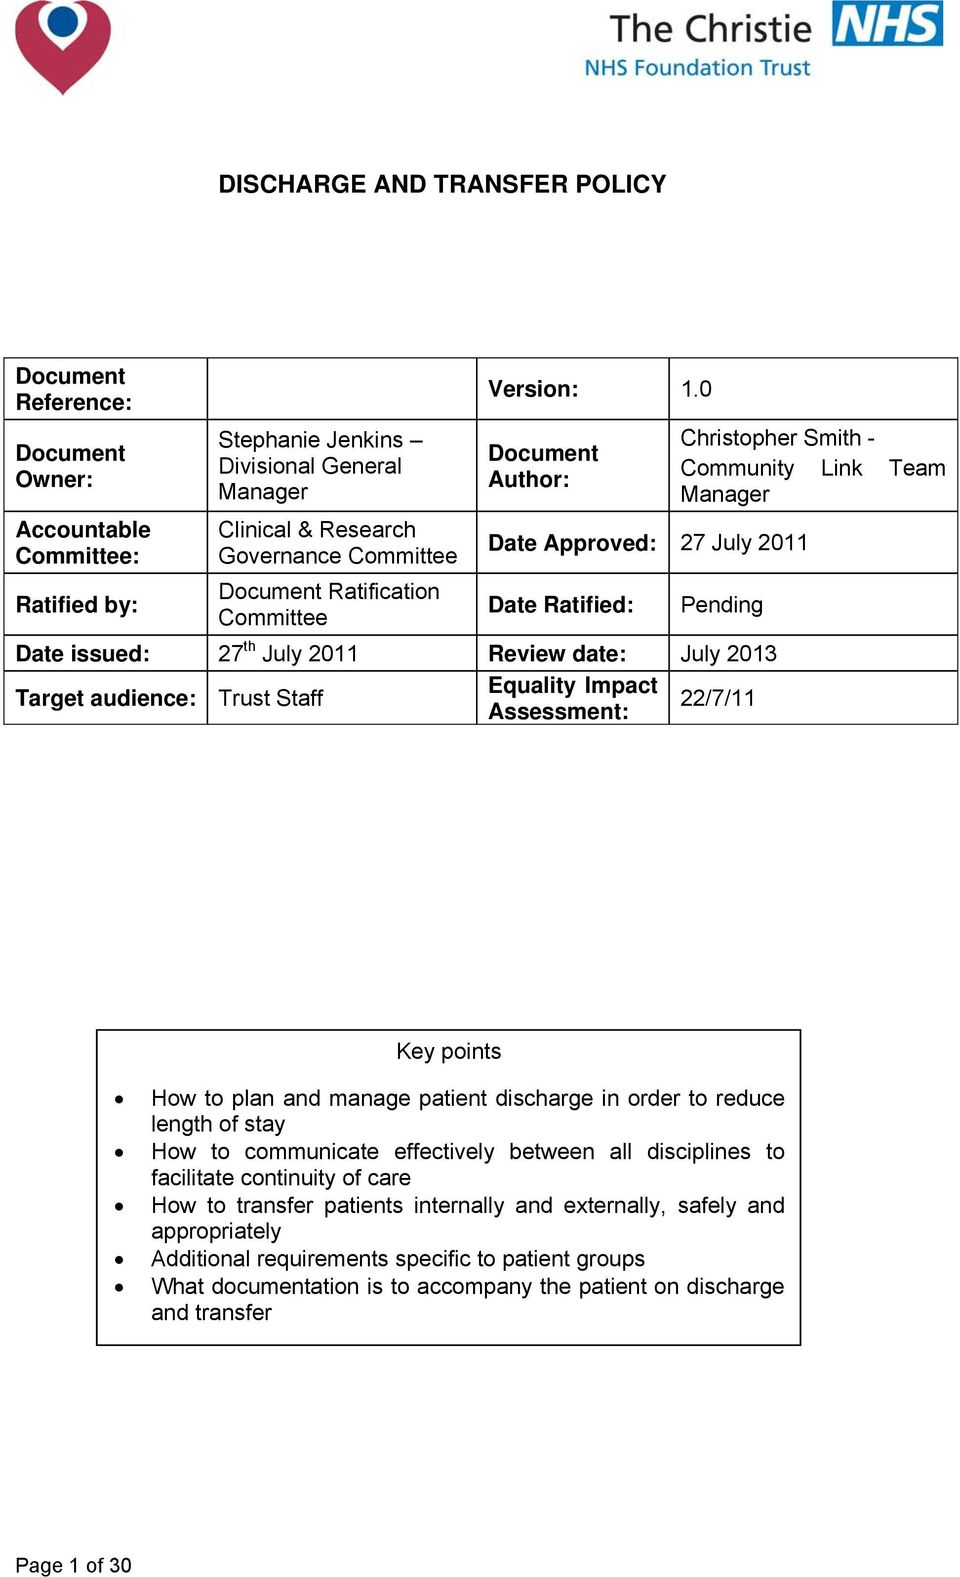 0 Document Author: Date Approved: 27 July 2011 Date Ratified: Christopher Smith - Community Link Team Manager Pending Date issued: 27 th July 2011 Review date: July 2013 Target audience: Trust Staff